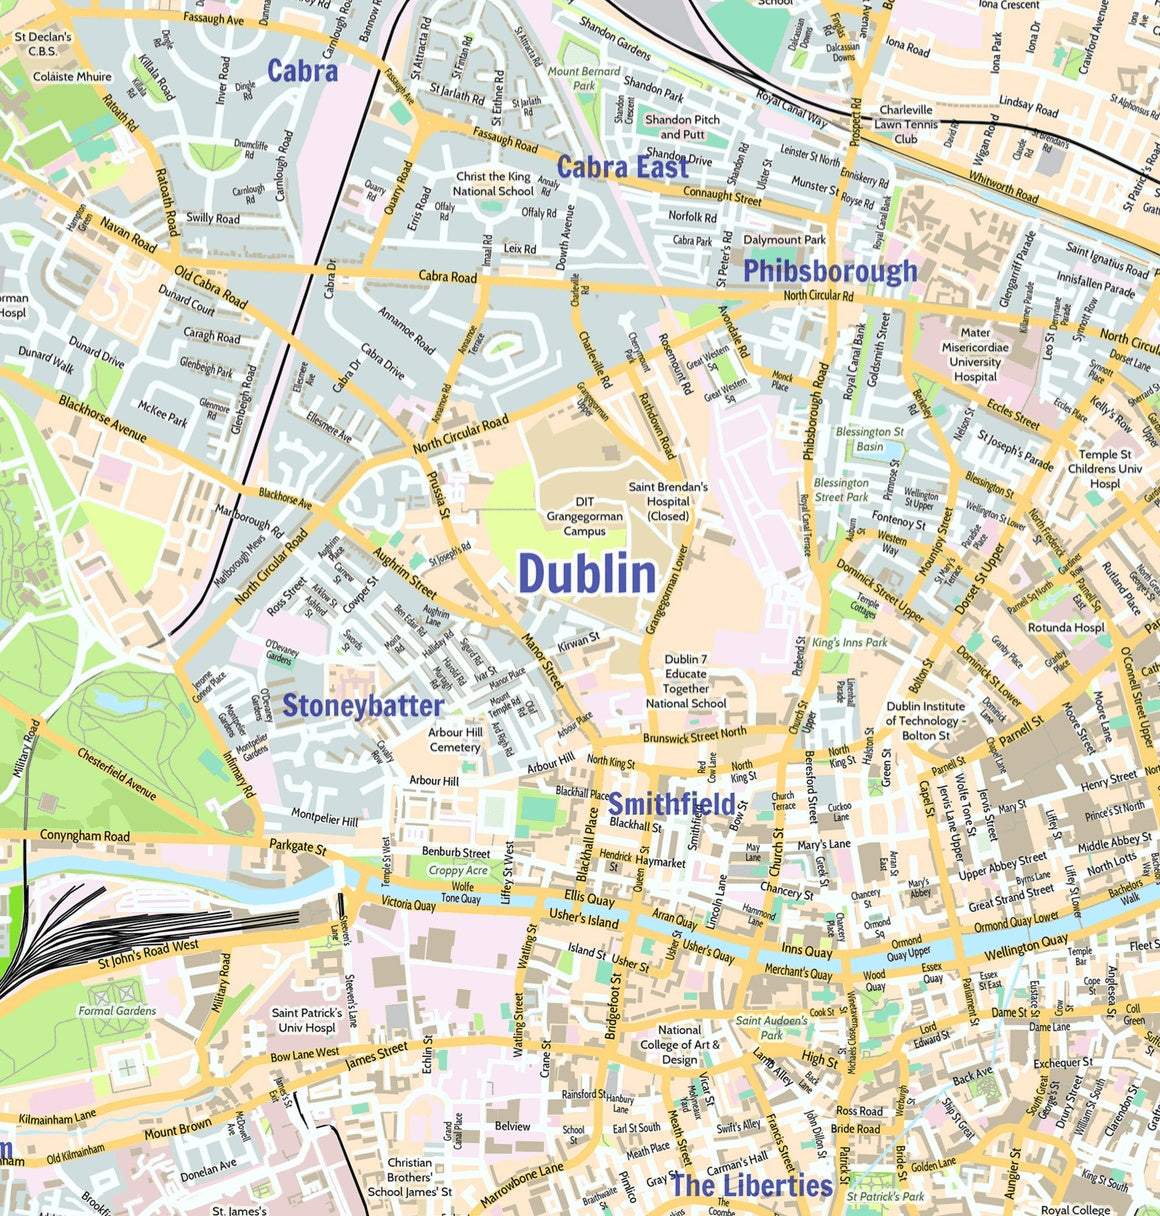 Dublin City Map - Laminated Wall Map of Dublin, Ireland on city map of luxembourg, city map of bosnia and herzegovina, city map switzerland, city map of jersey, city map of aruba, city map of southern chile, city map of bahamas, city map of myanmar, city map of libya, city map of kuwait, city map of bahrain, city map of united states of america, city map of latin america, city map of western usa, city map of slovakia, city map of tuscany, city map japan, city map of slovenia, city map of the carolinas, city map of el salvador,